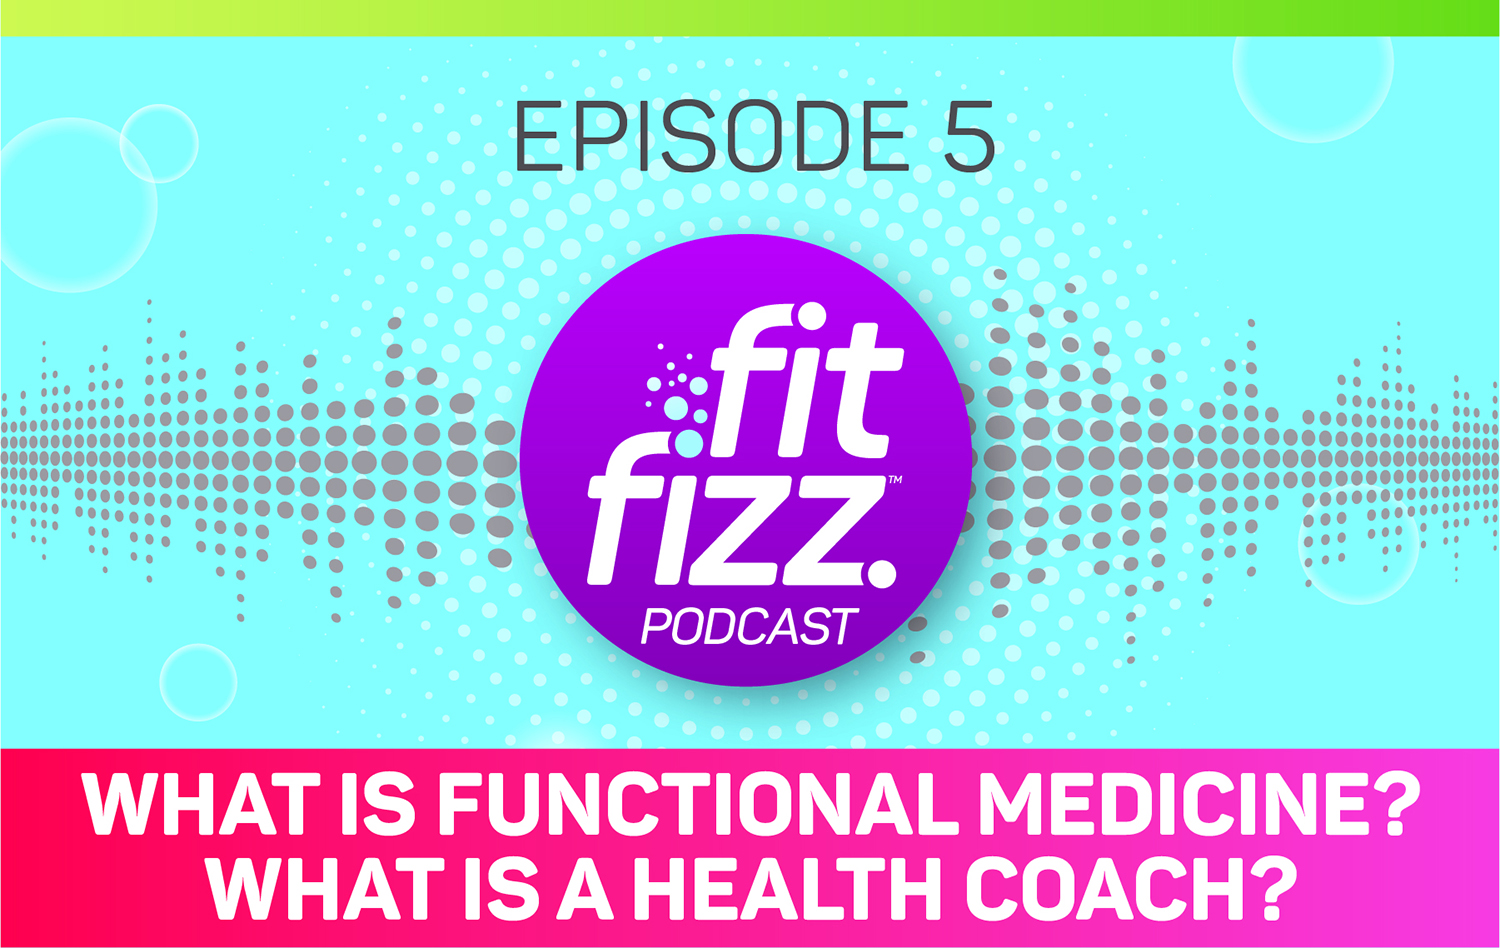 Podcast Episode 5: What is Functional Medicine? What is a Health Coach?